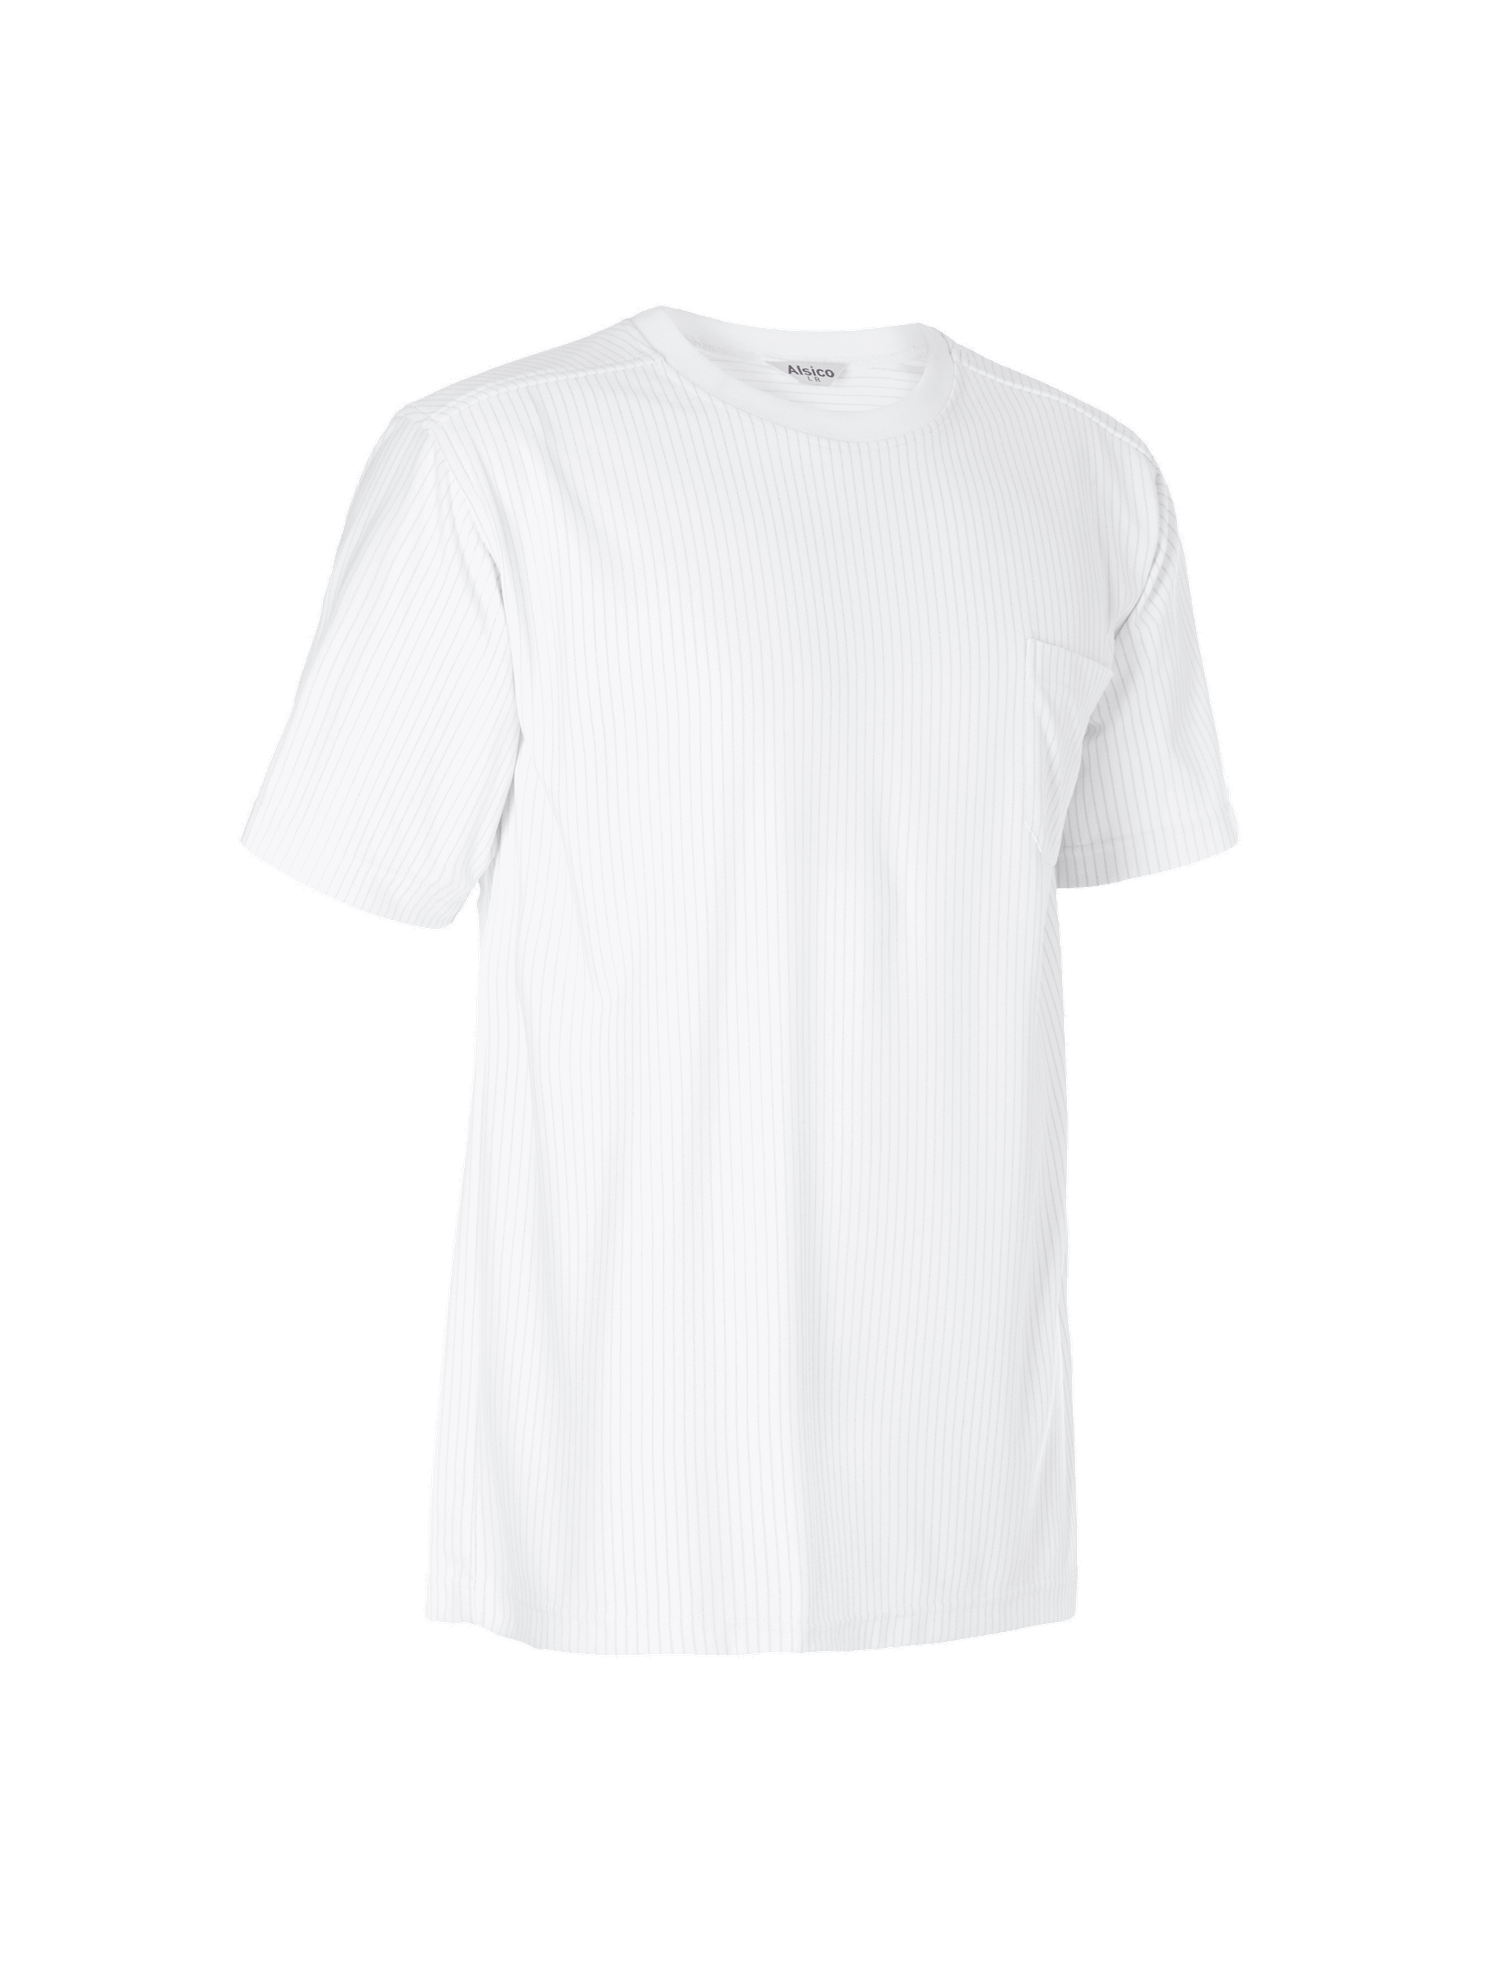 Picture of Anti-Static ESD T-Shirt - White